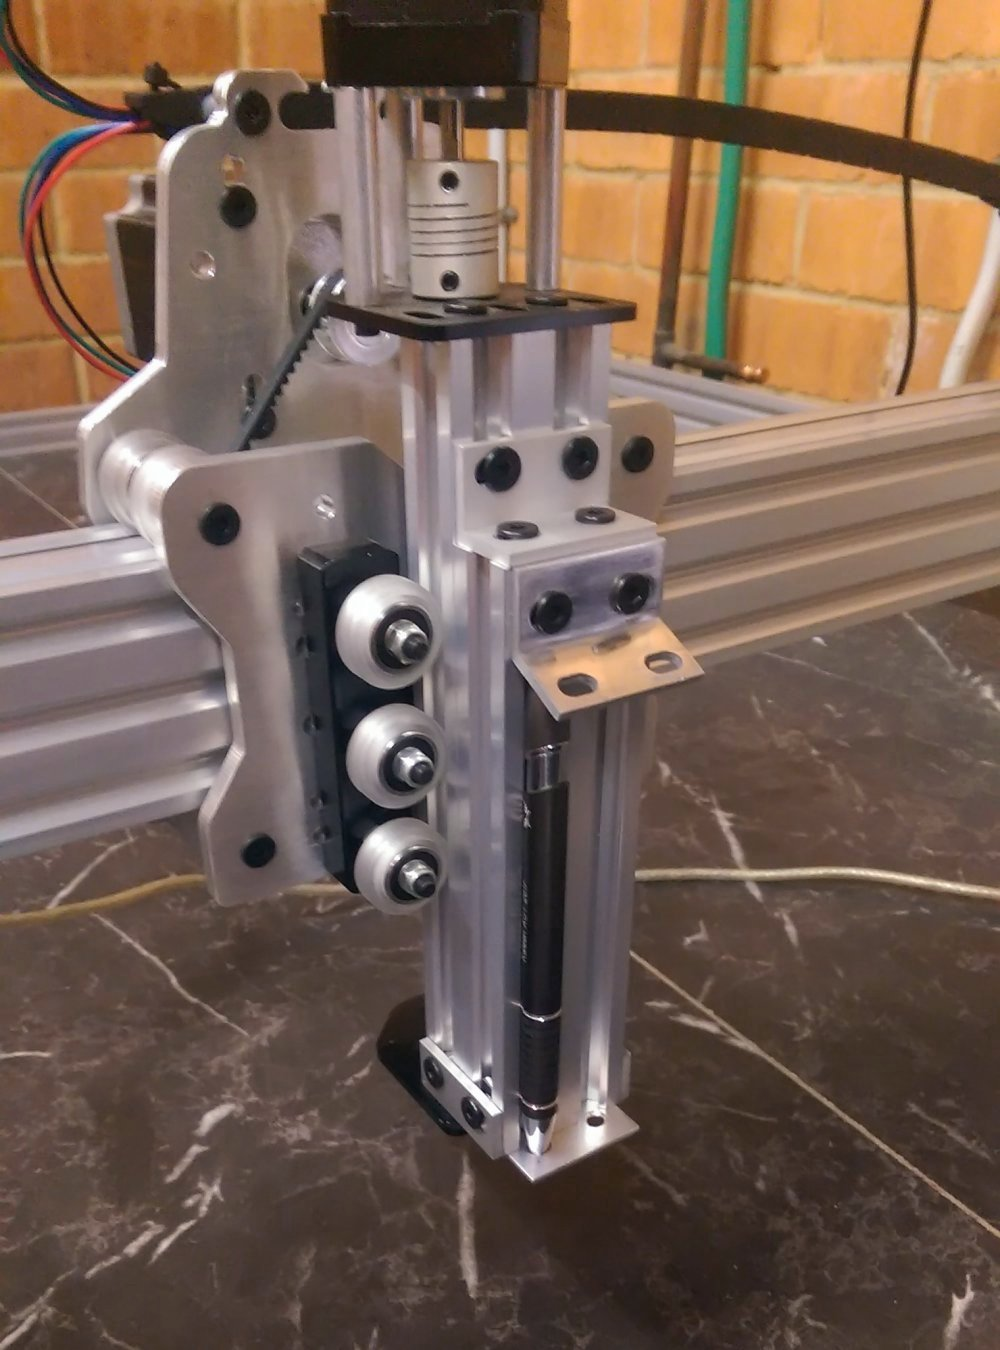 Photo of the pen holder attached to the CNC